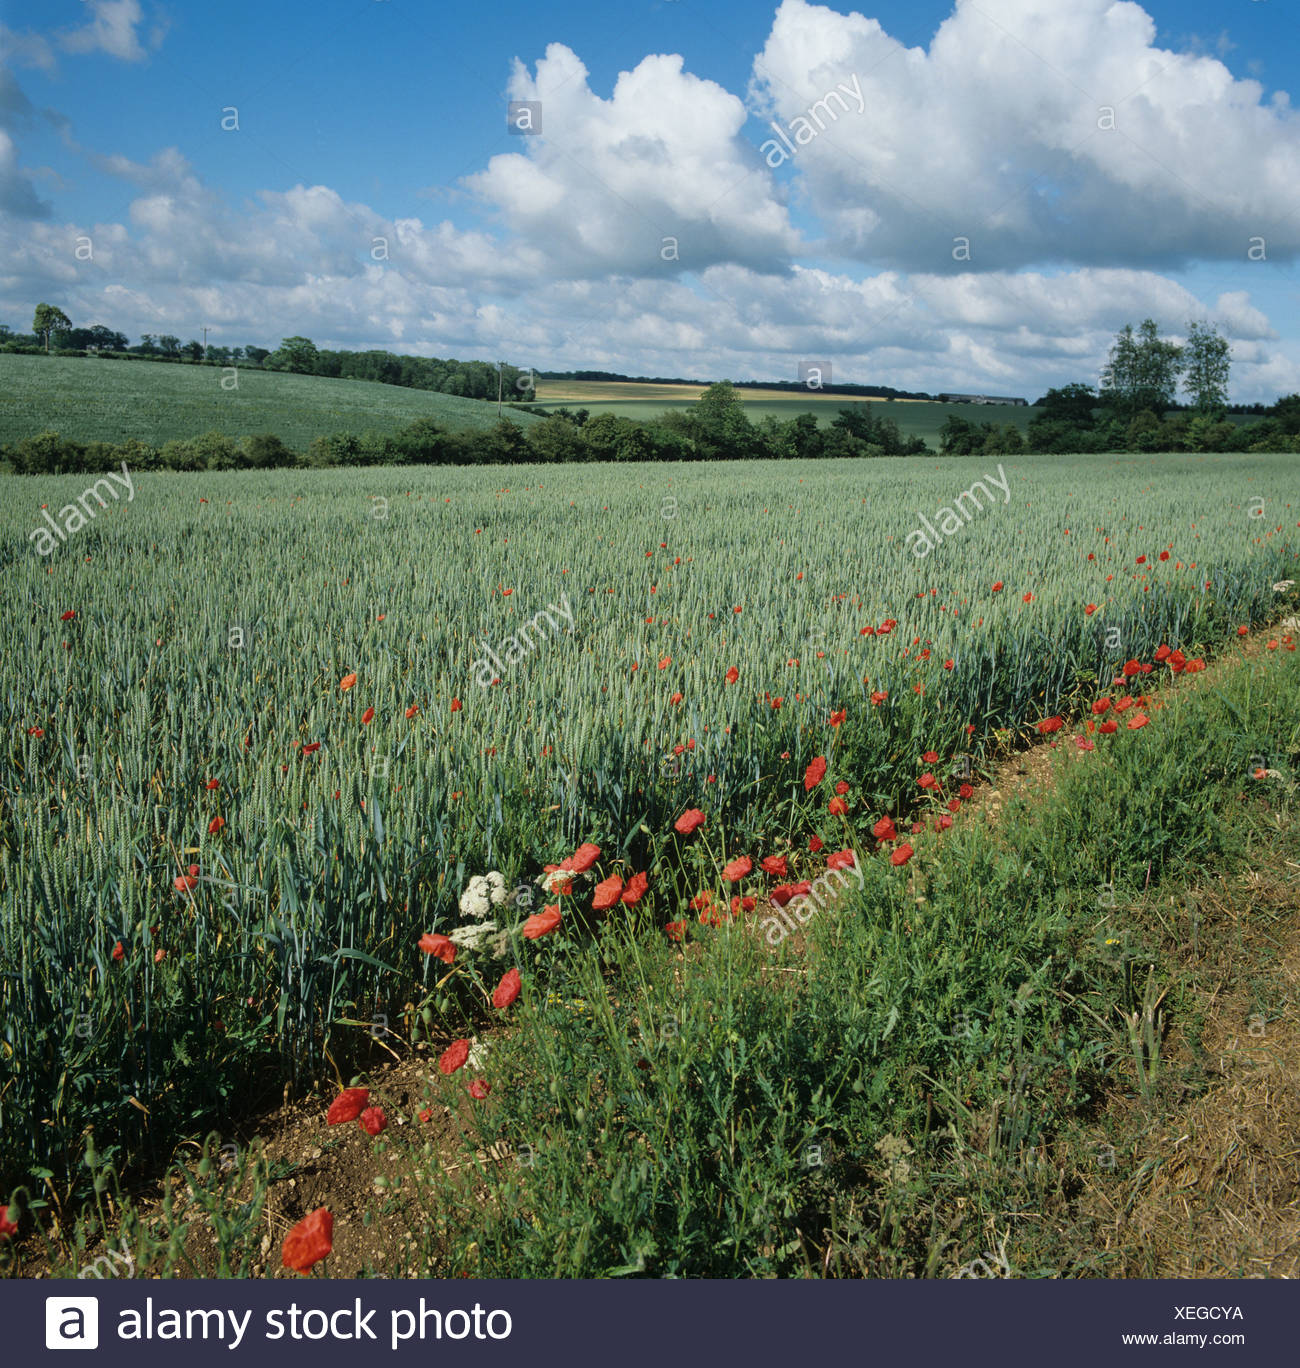 Flowering poppies corn poppies and vegetation along field margin of wheat crop in ear - Stock Image